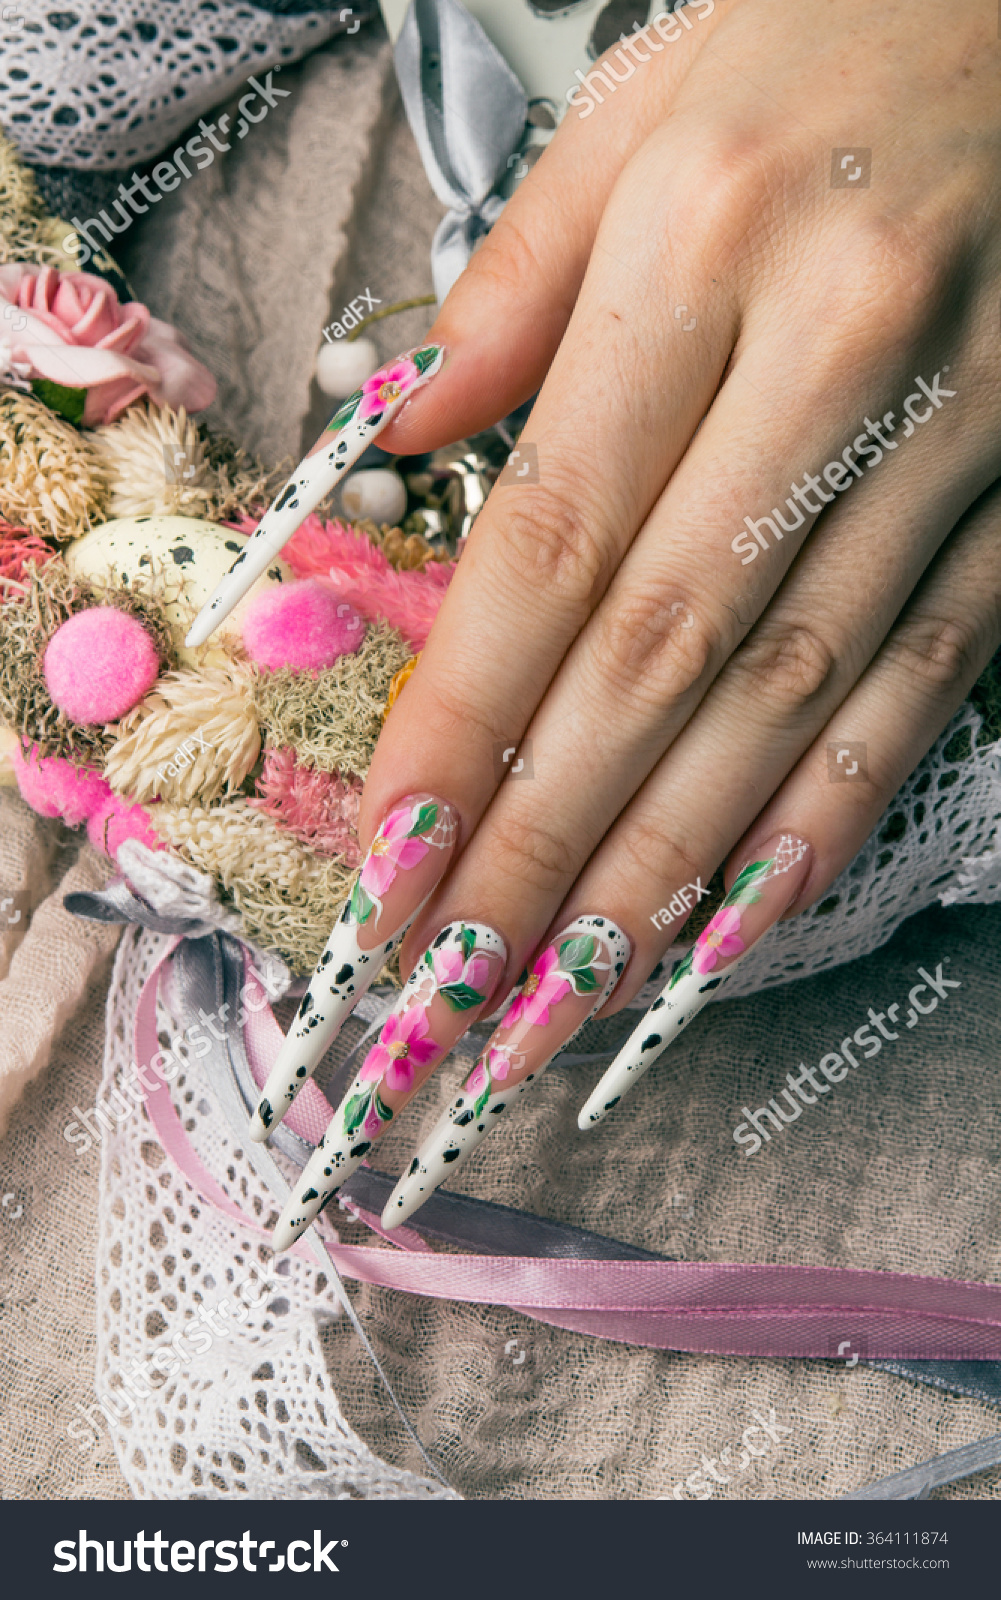 Refined Painted Long Nails Hands Flower Stock Photo 364111874 ...